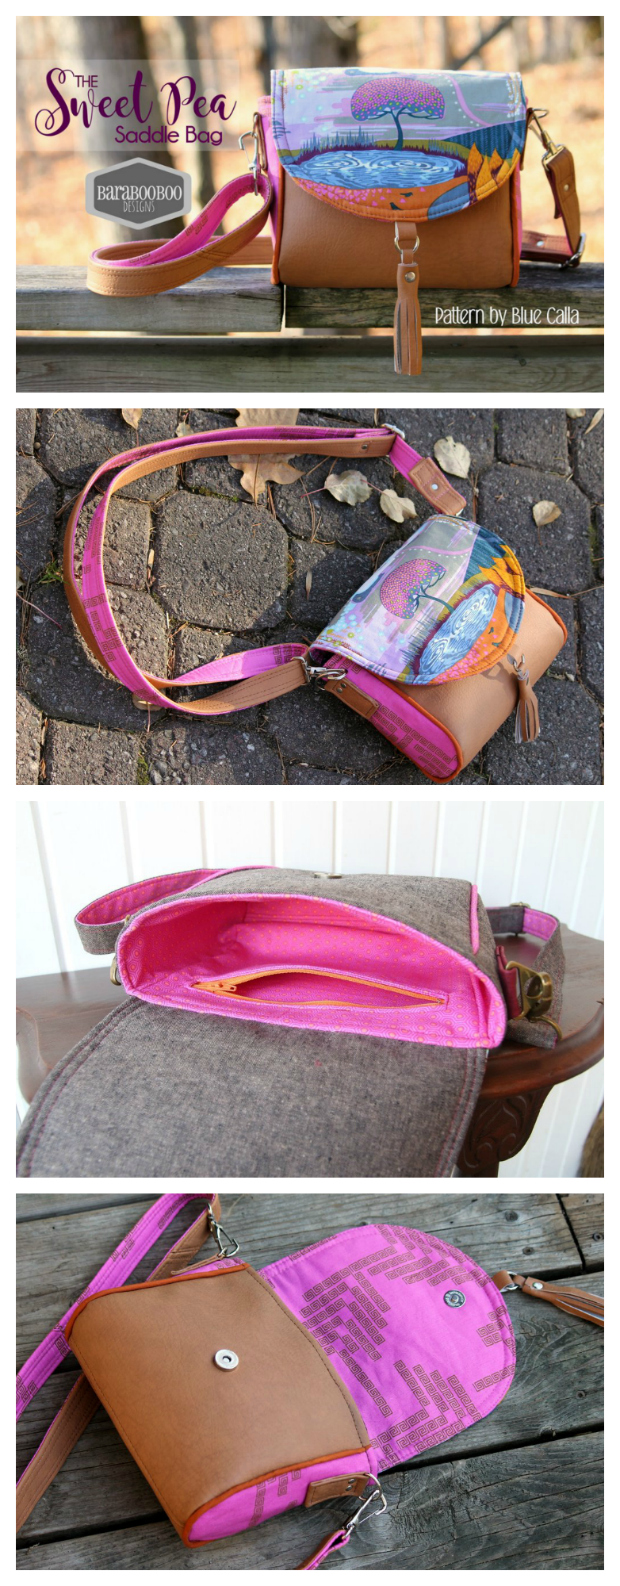 Here's a FREE pdf pattern for an adorable crossbody bag called The Sweet Pea Saddle Bag. The Sweet Pea Saddle Bag is perfect for children or adults who want a smaller sized bag for essentials. It is designed for the beginner sewist as it is an easy sew. The bag has one zippered pocket on the inside and a flap closure with instructions for an optional decorative tassel on the flap.